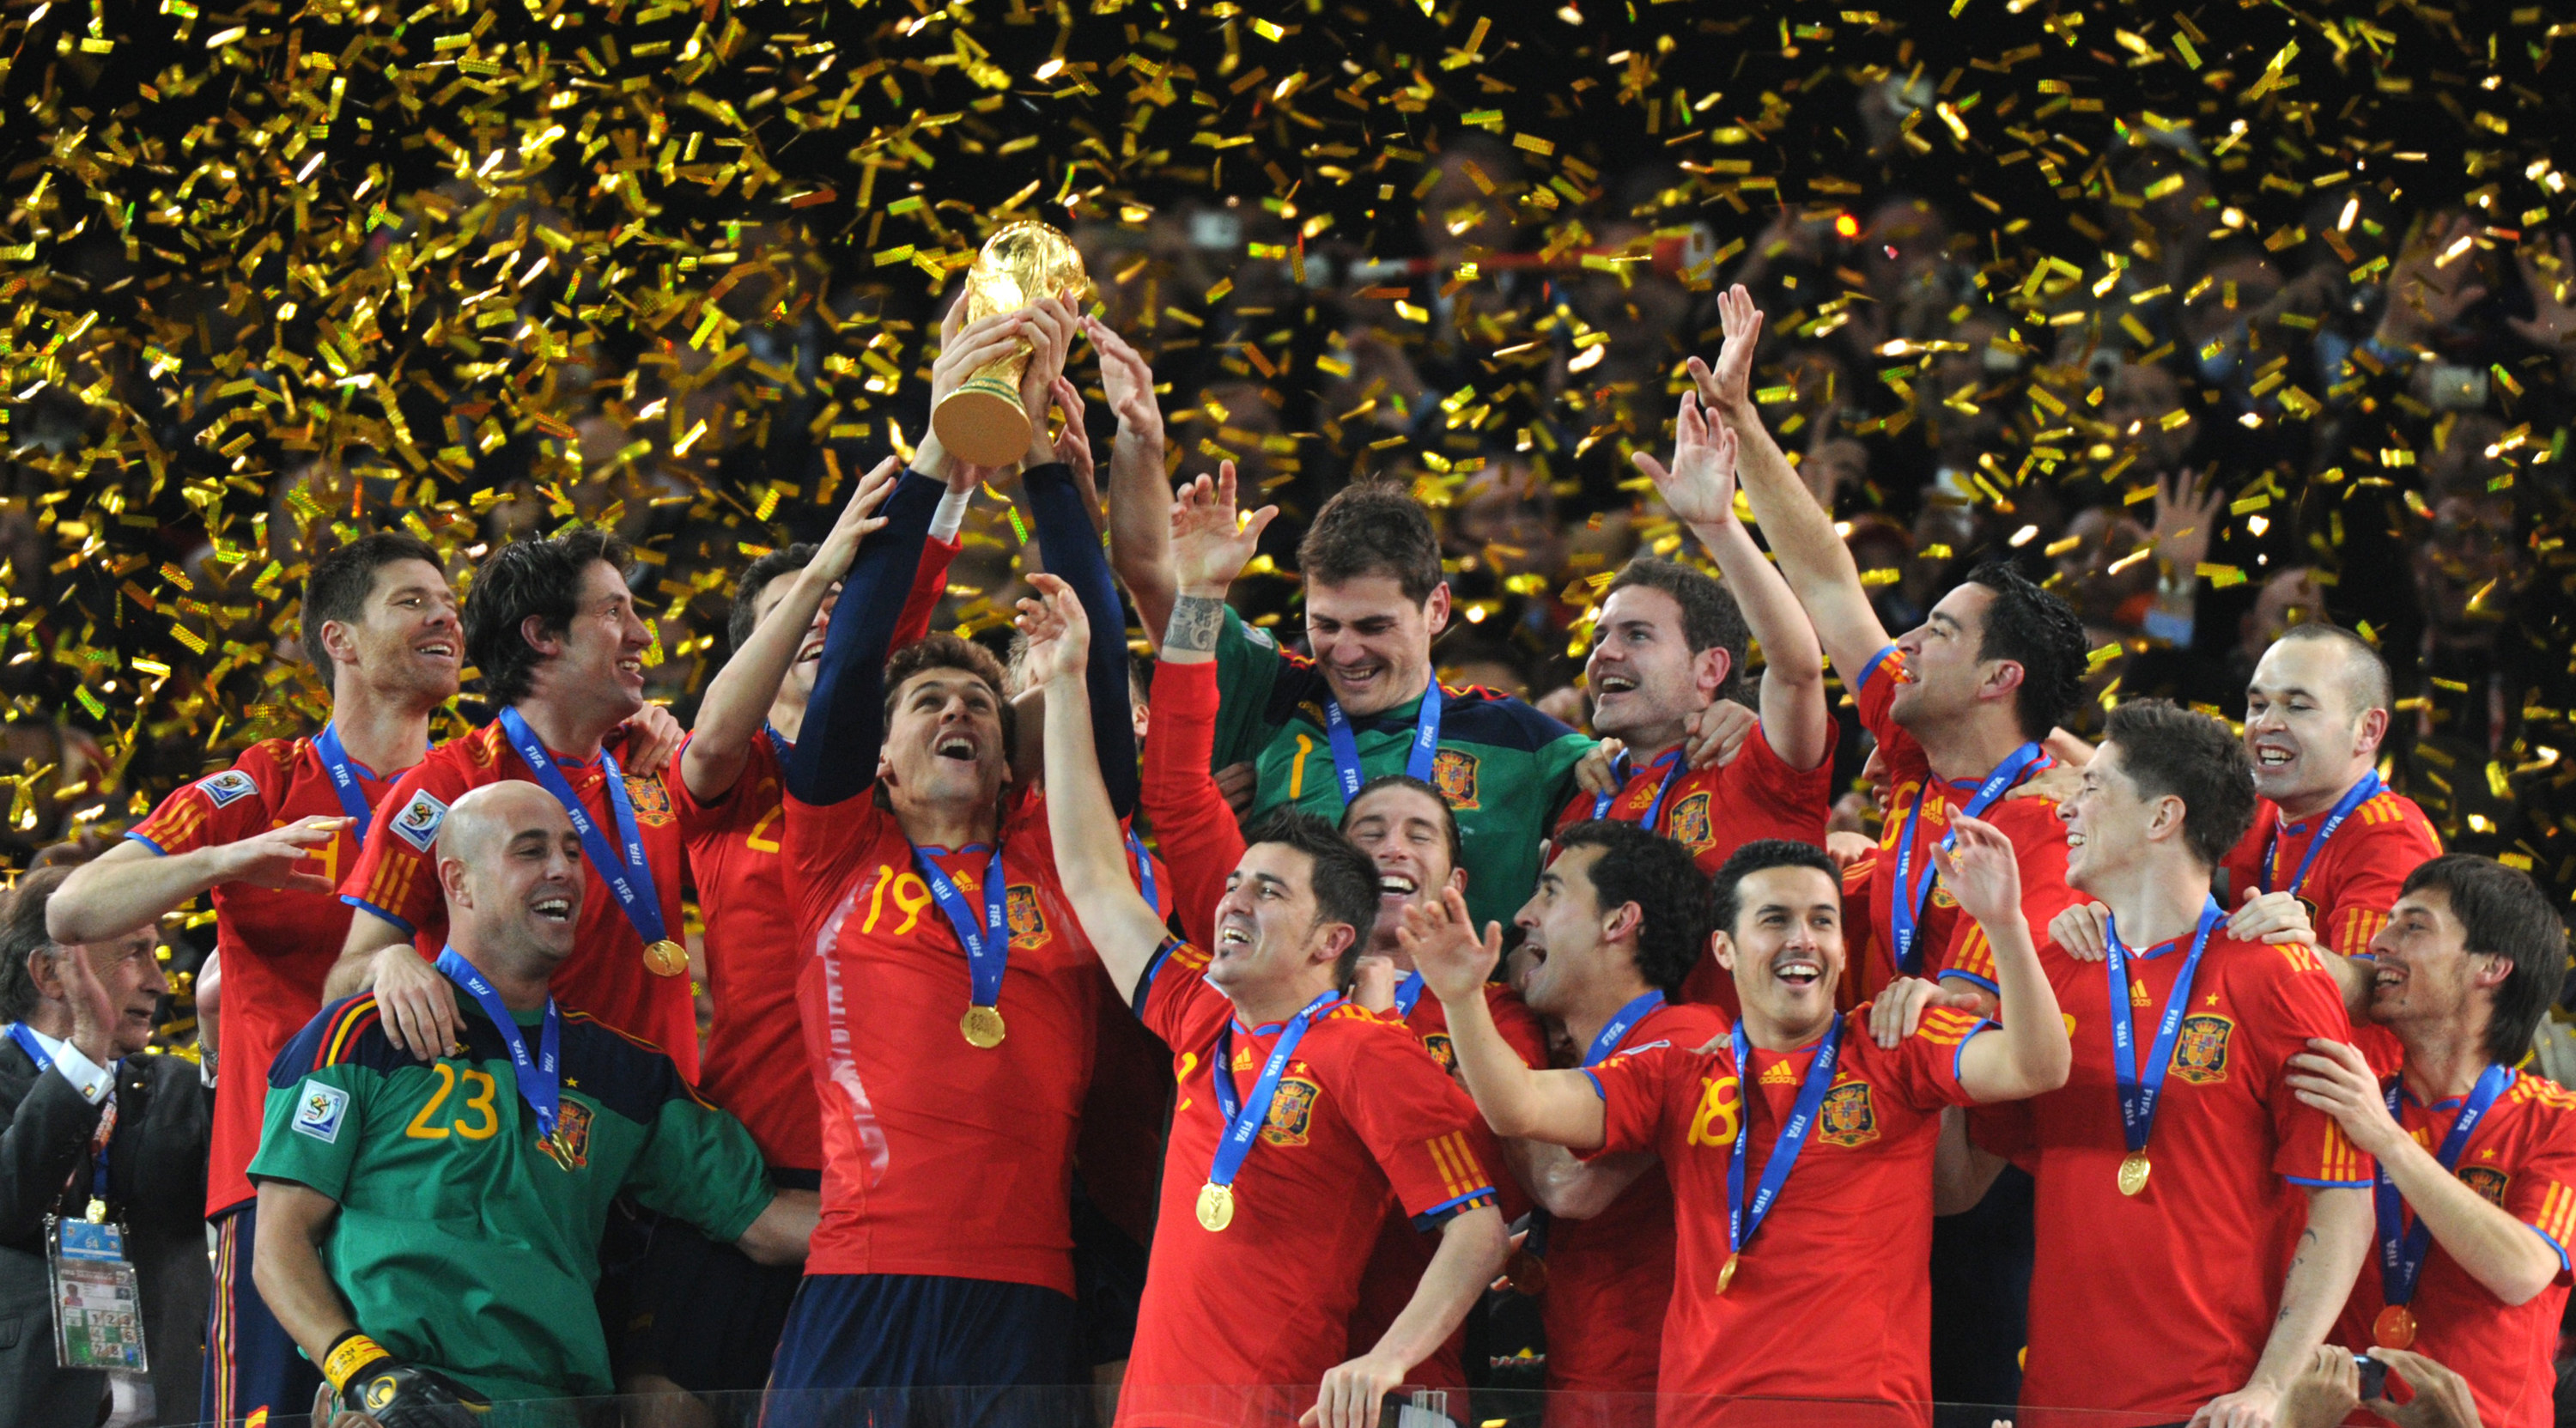 Photo of the Spanish team holding up the World Cup trophy with gold confetti falling around them.